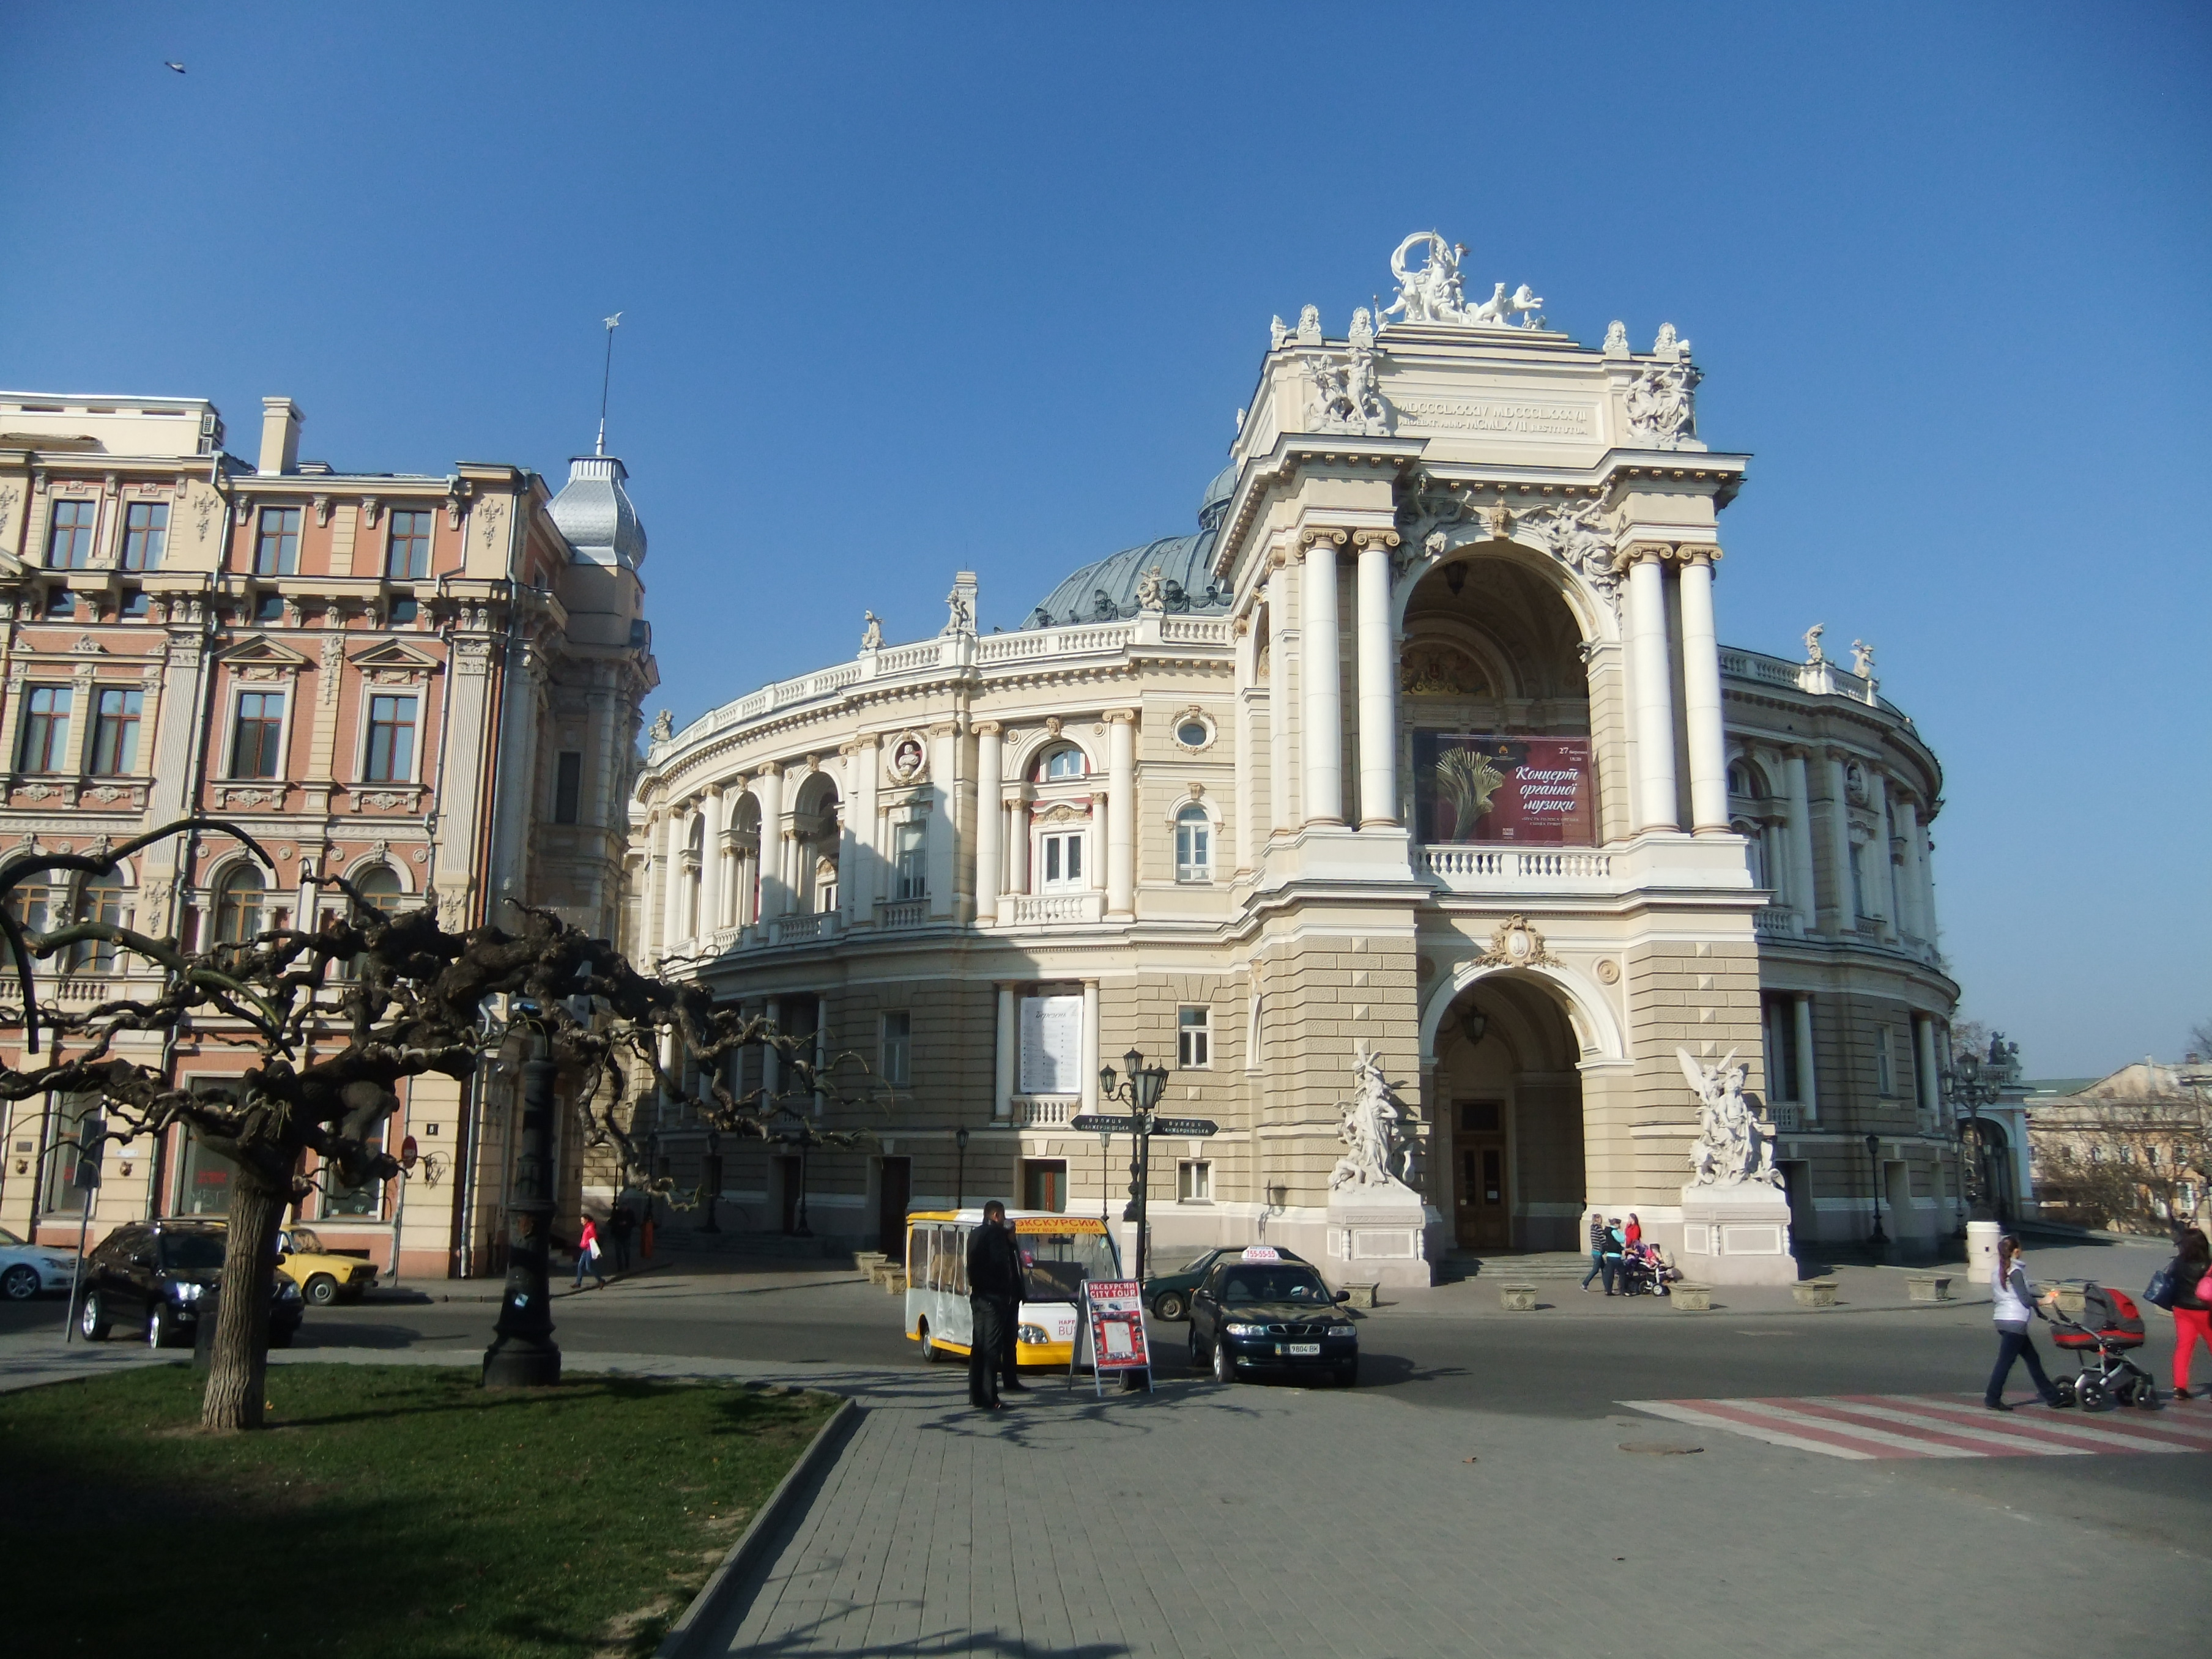 Teaching English in Ukraine - a Guide - What Kate and Kris did